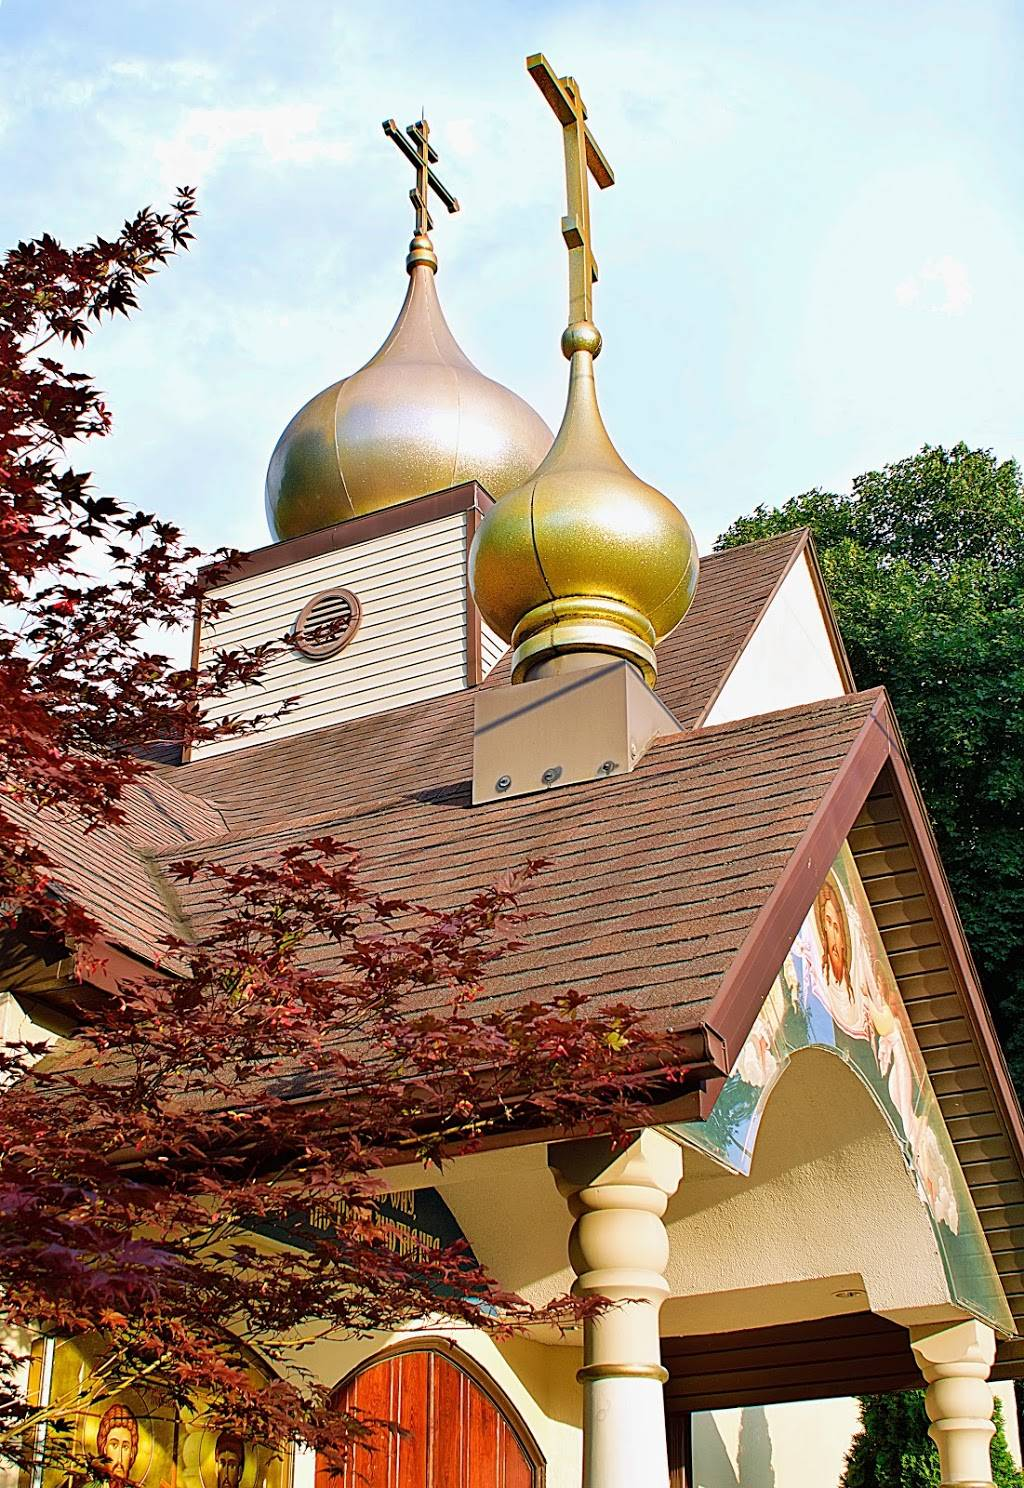 Sts Theodore Orthodox Church - church  | Photo 5 of 9 | Address: 96 Los Robles St, Williamsville, NY 14221, USA | Phone: (716) 634-6712